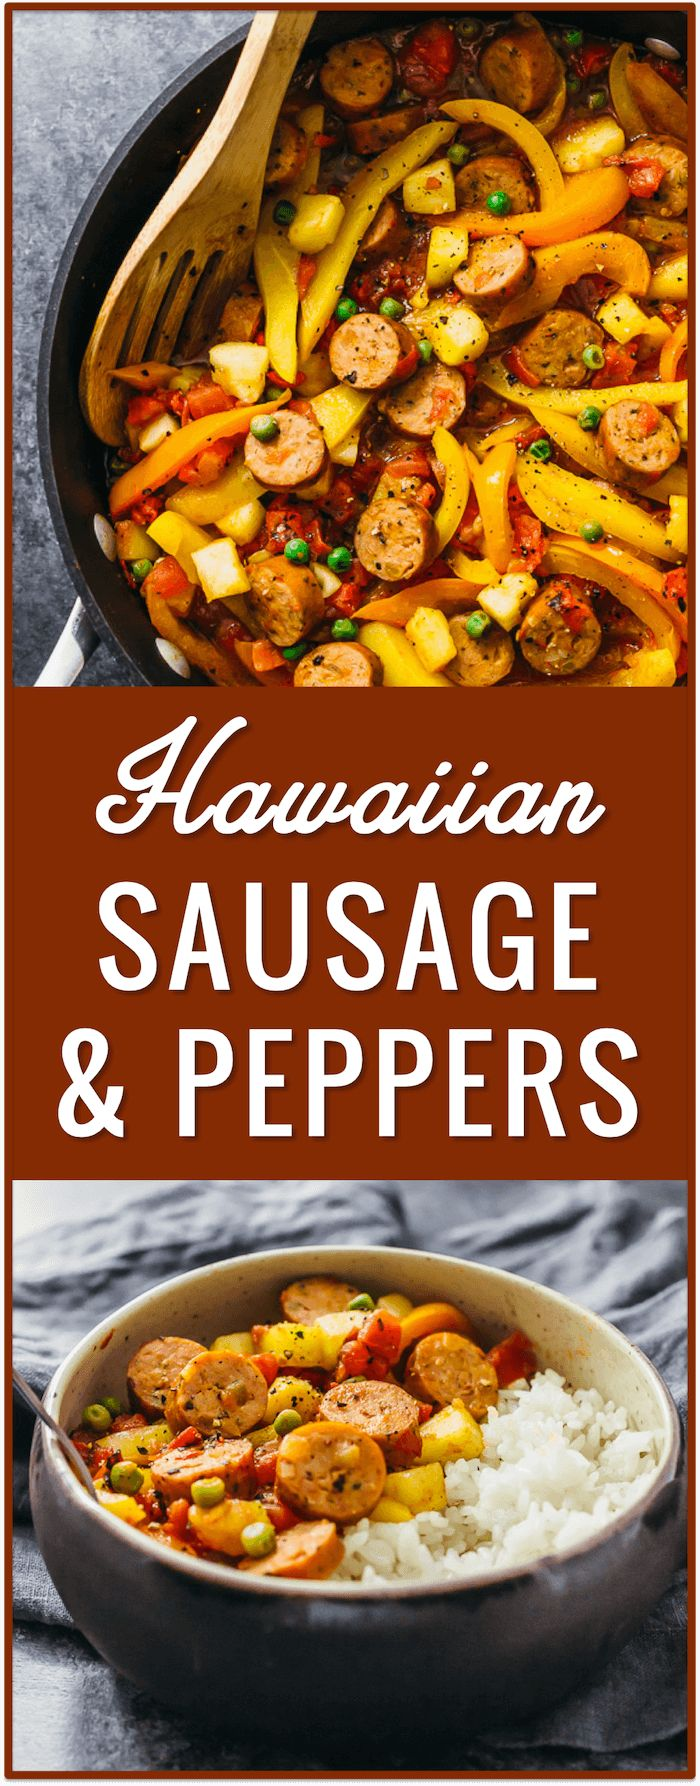 Hawaiian sausage and peppers with rice, easy, recipe, dinner, lunch, pineapples, slow cooker, italian, in oven, sauteed, skillet, crockpot, pasta, sandwich, baked, potatoes via @savory_tooth